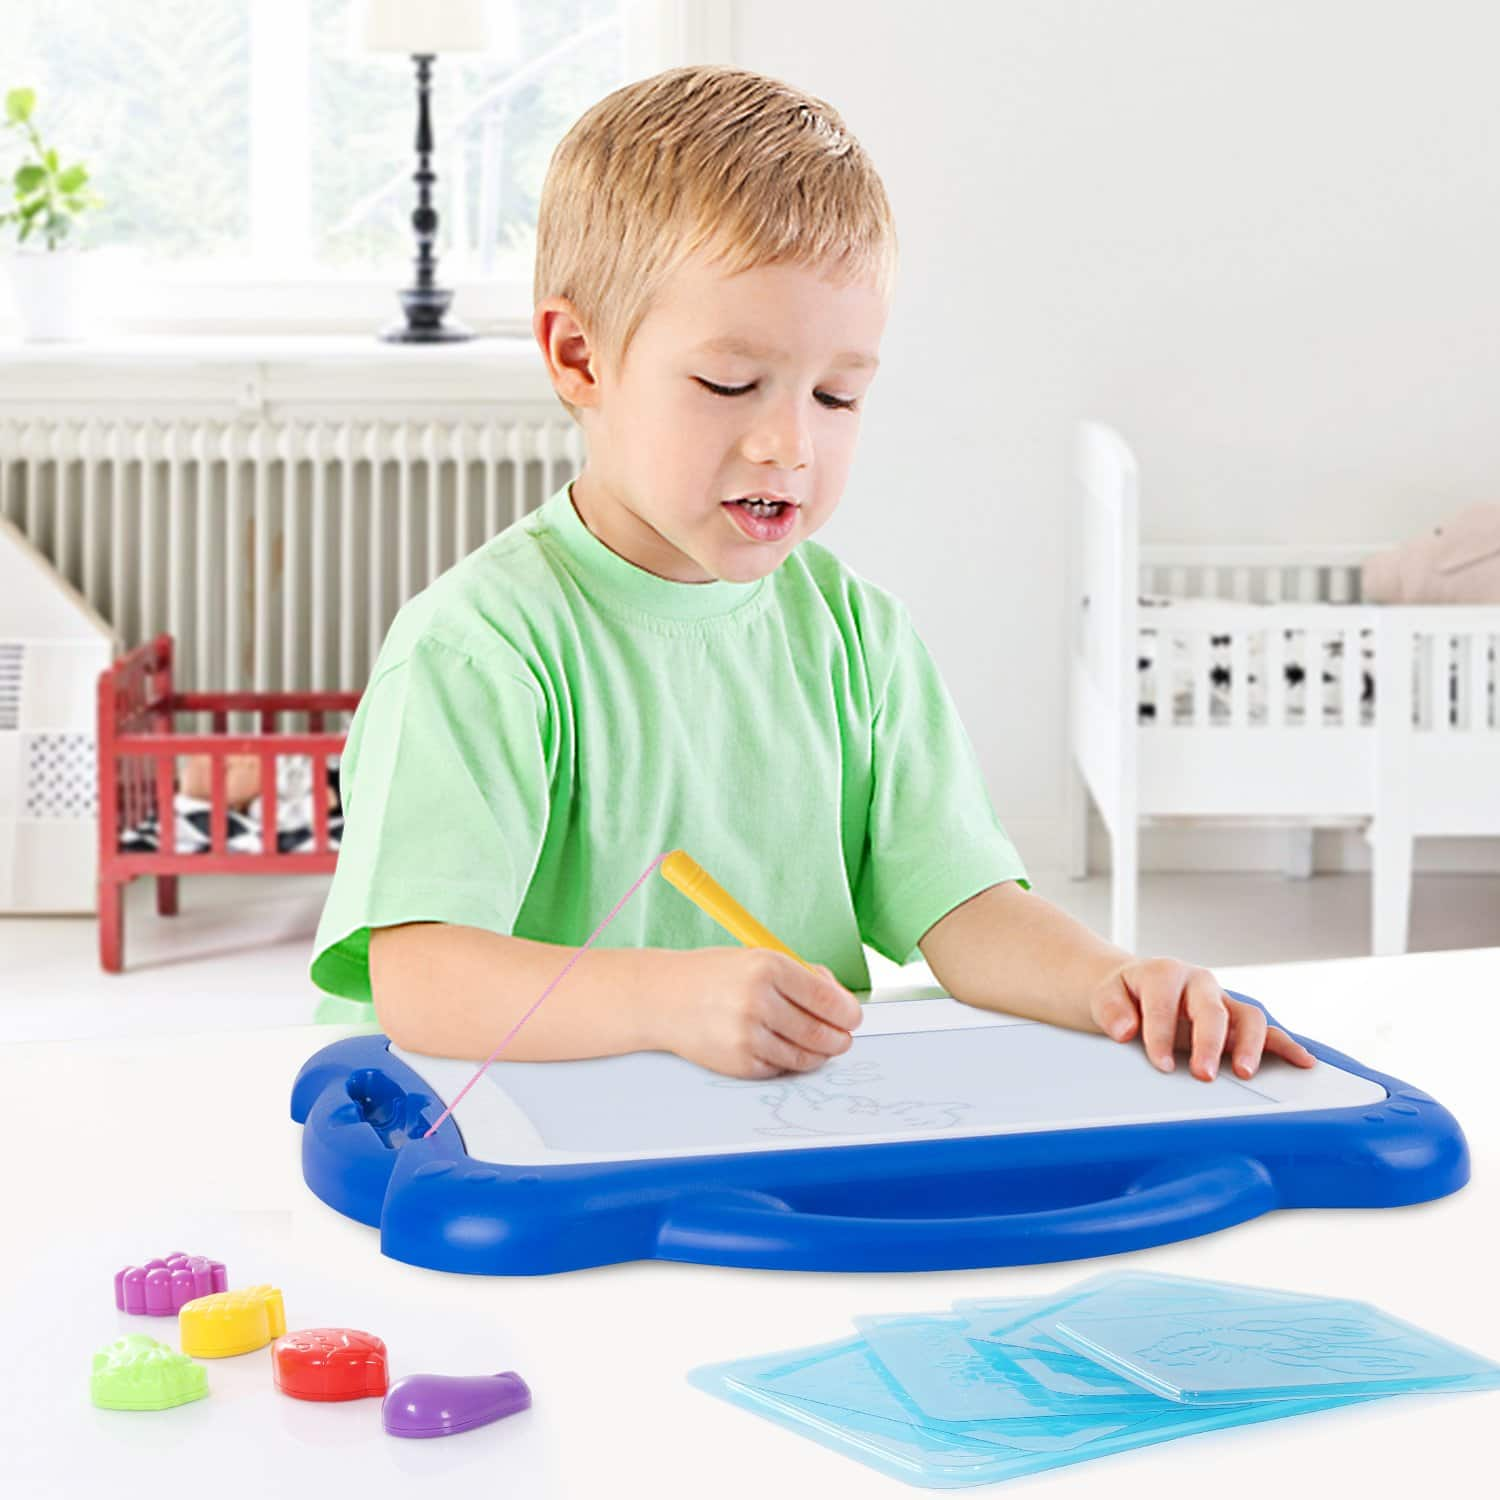 Magnetic Drawing Board Toy for Kids $12.99 Amazon Prime